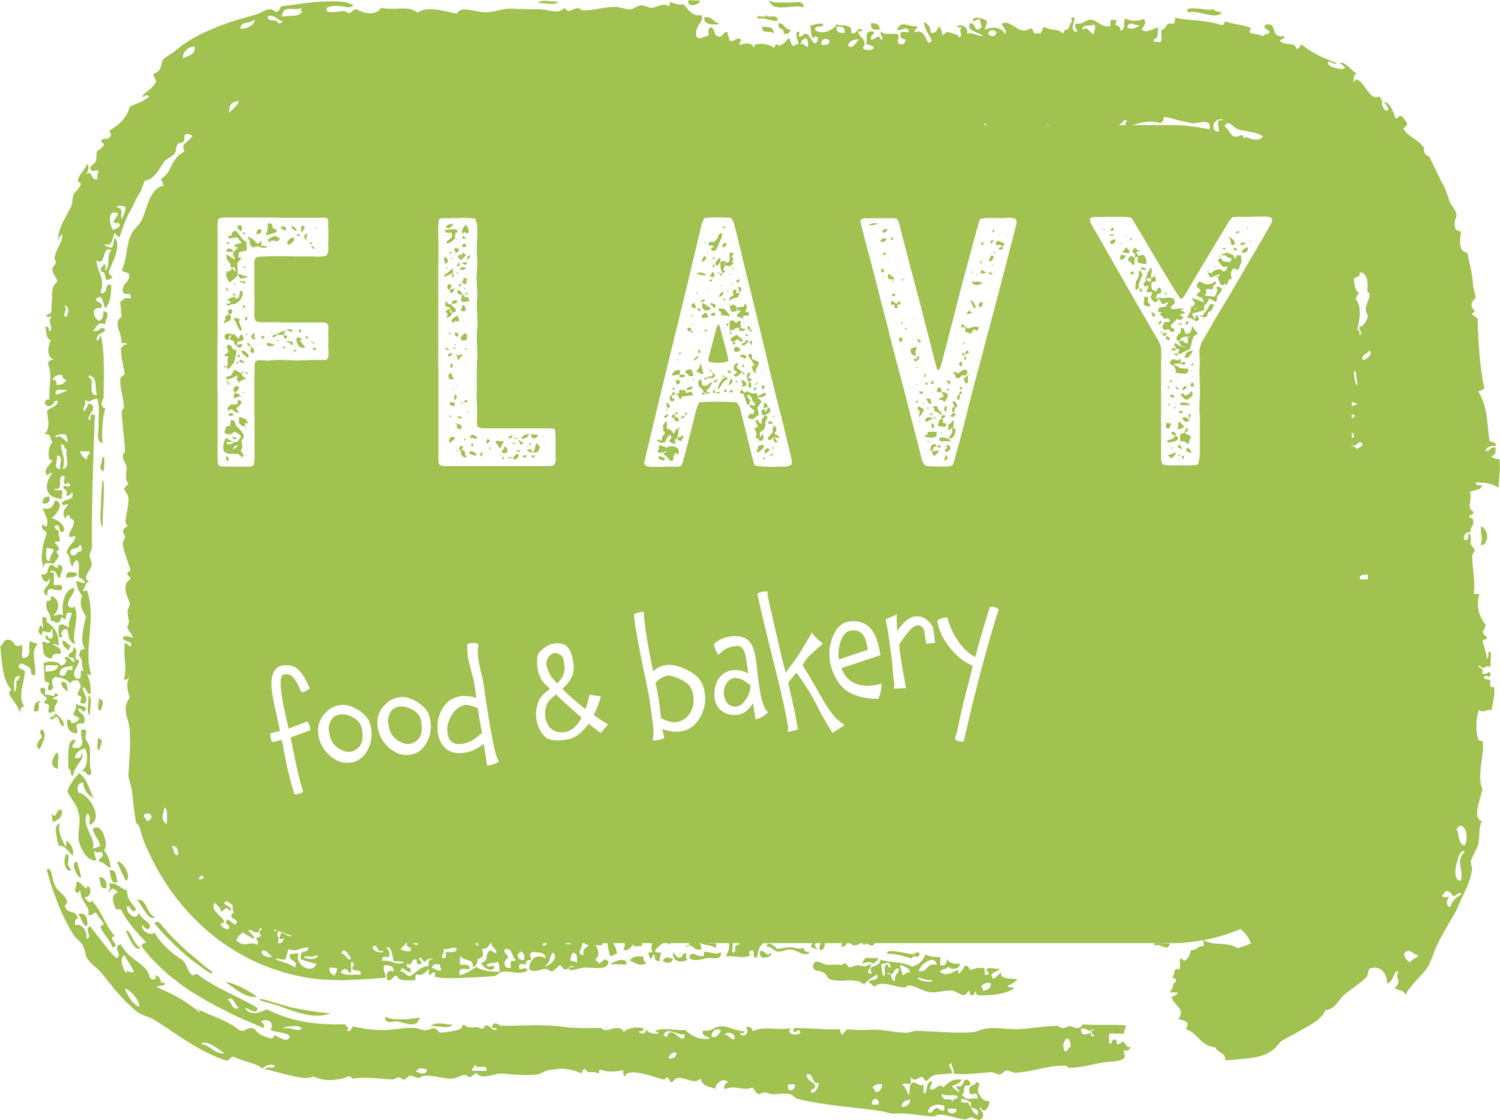 FLAVY